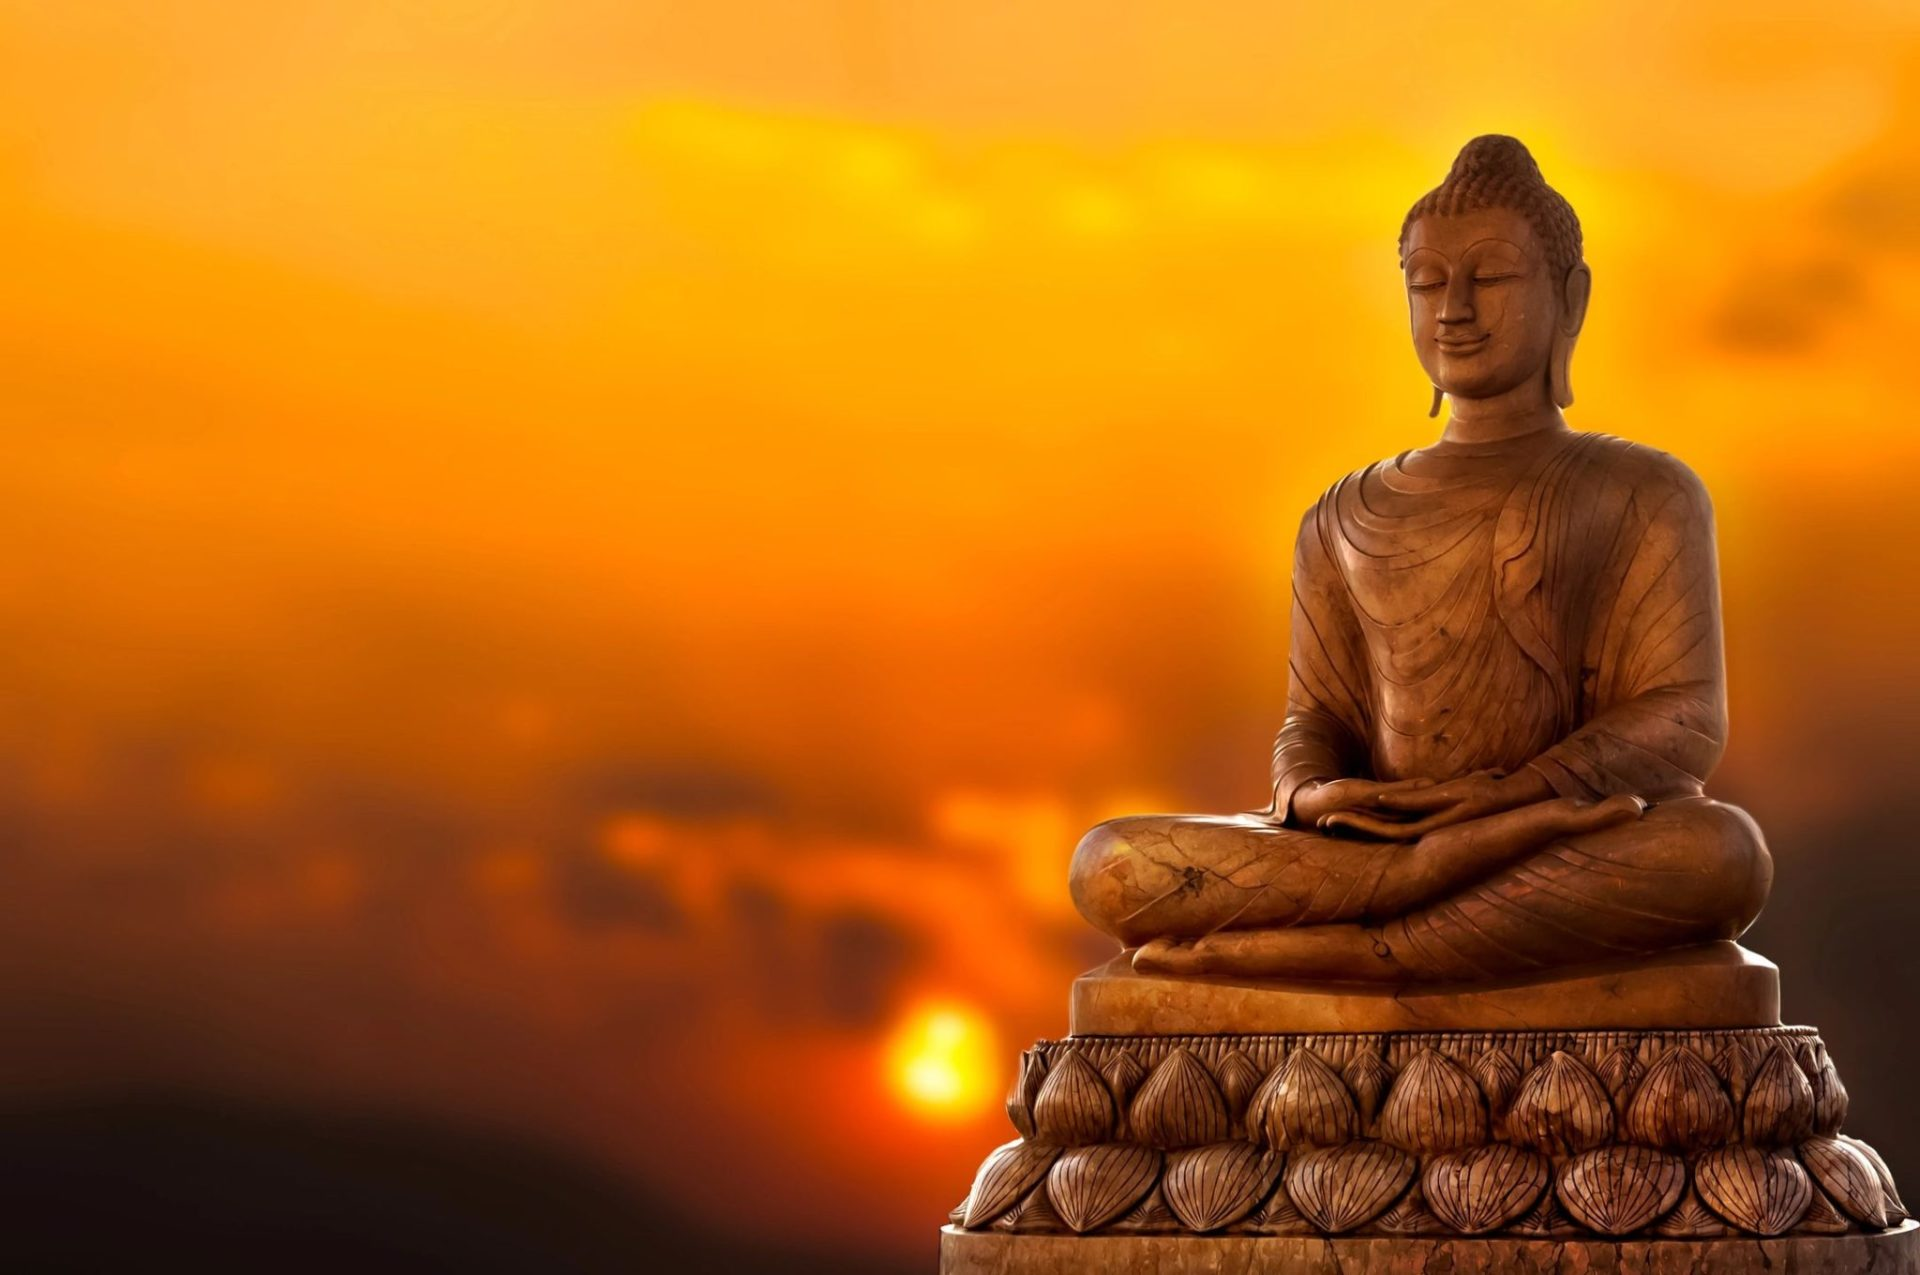 Simple to Understand Meditation Instructions